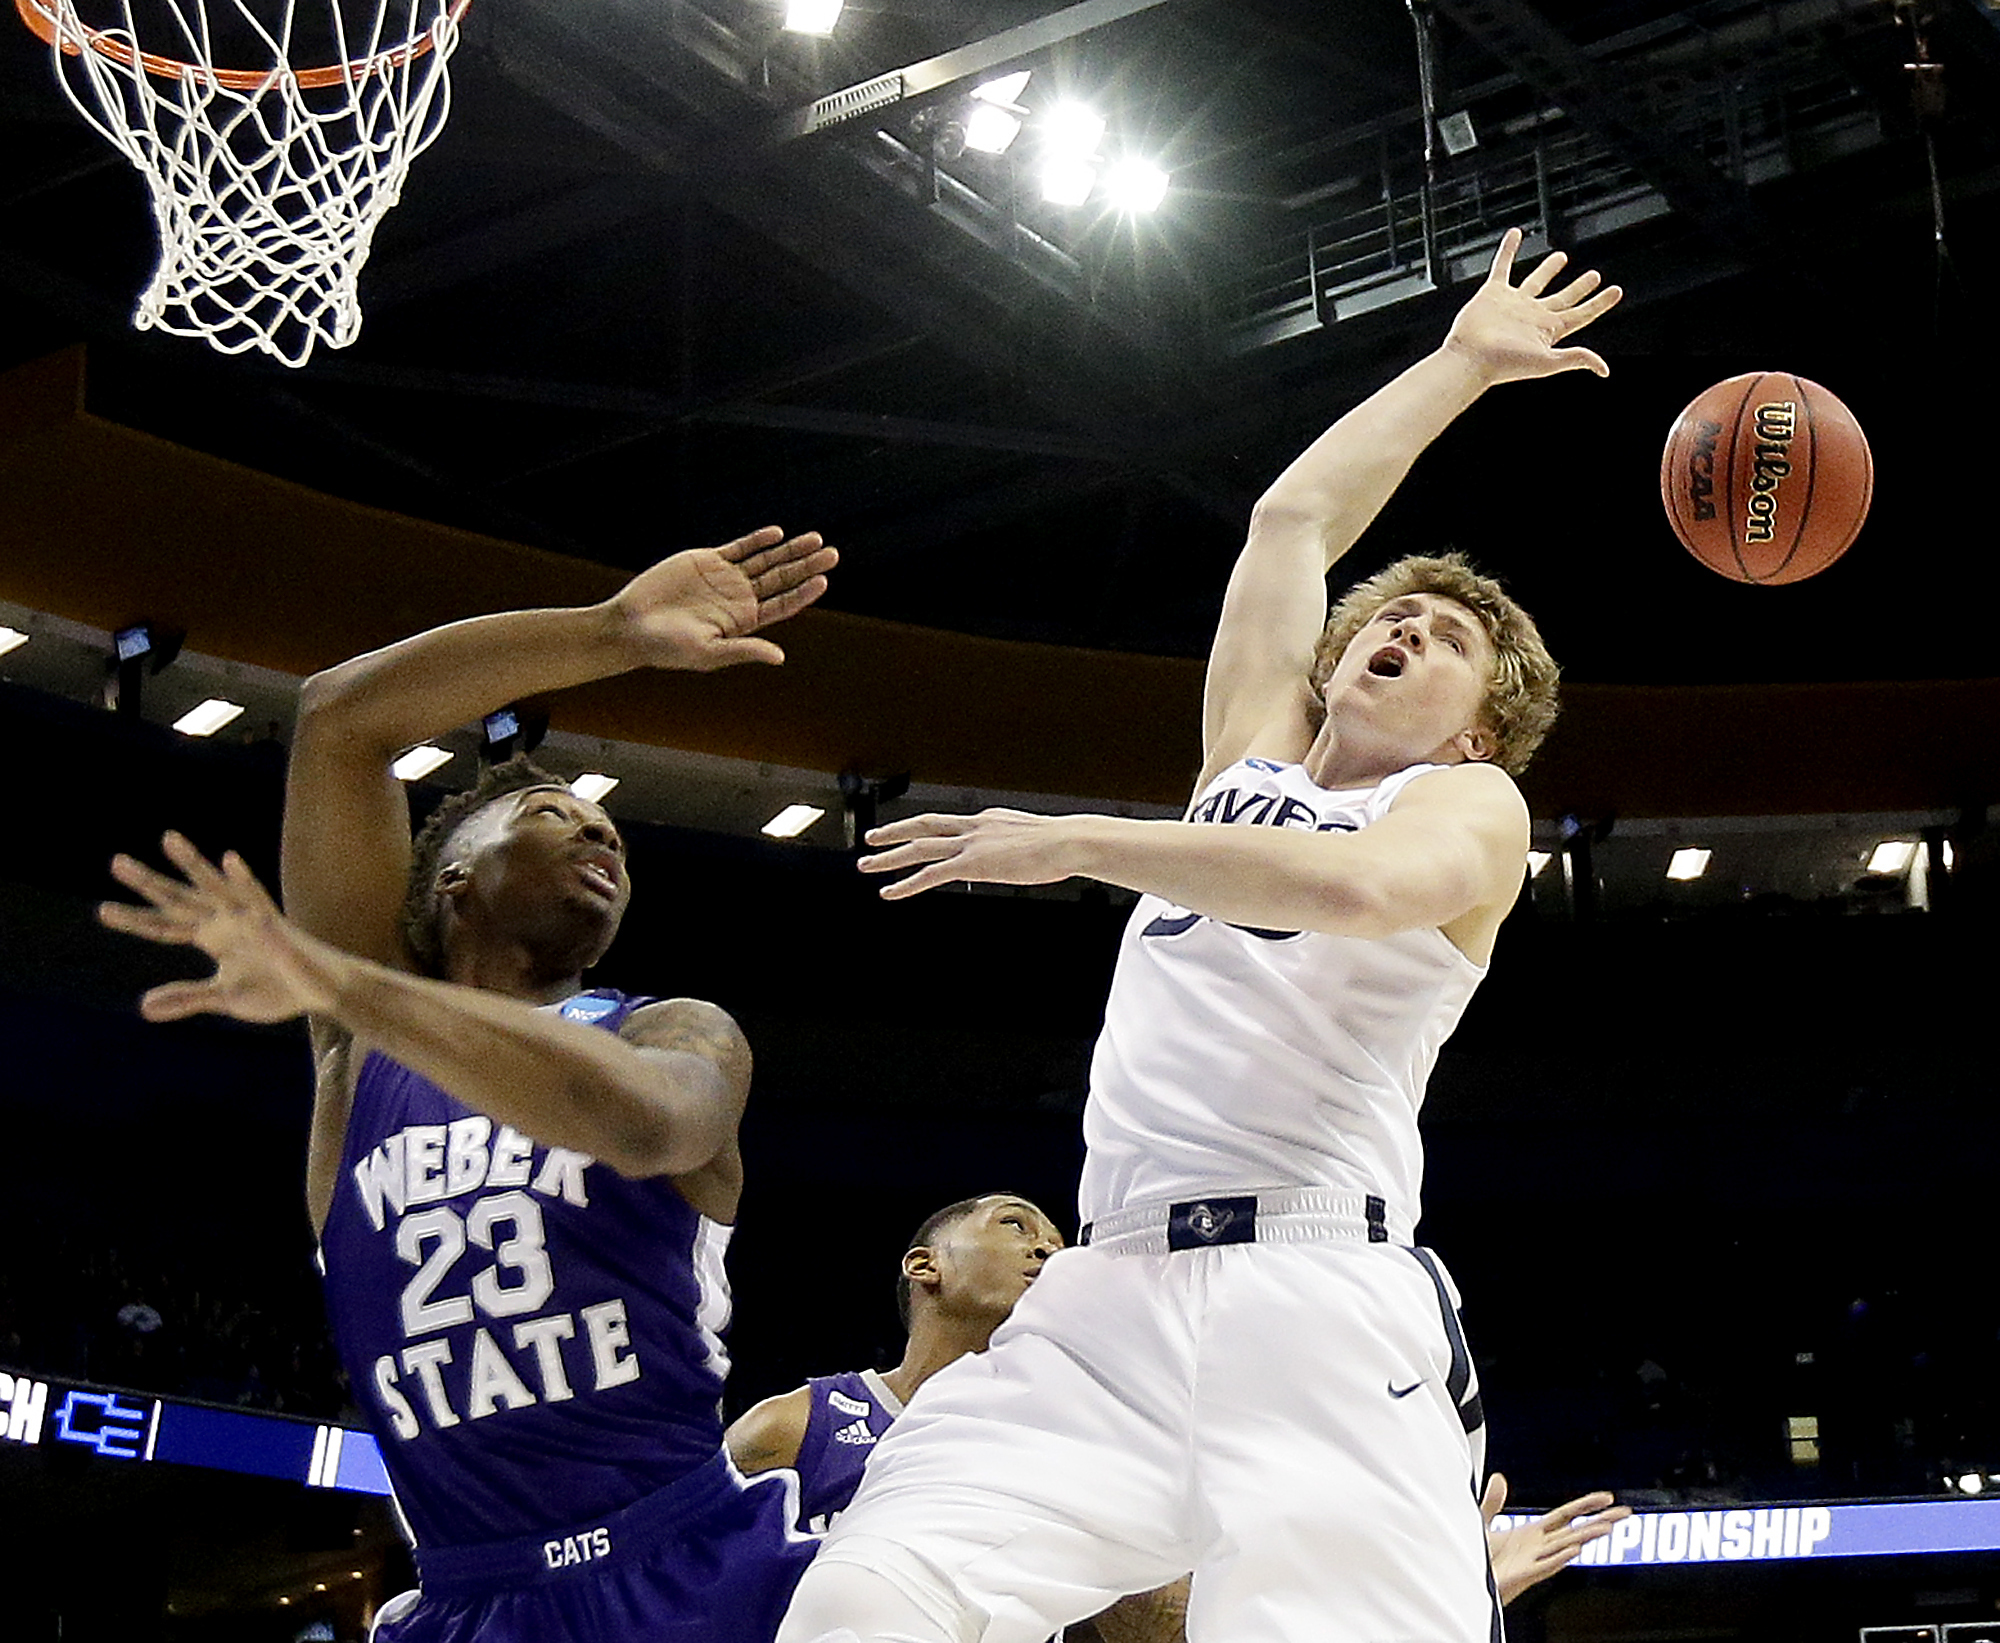 Weber State's Richaud Gittens (23) knocks the ball away from Xavier's Trevon Bluiett during the first half of a first-round men's college basketball game in the NCAA Tournament, Friday, March 18, 2016, in St. Louis. (AP Photo/Charlie Riedel)